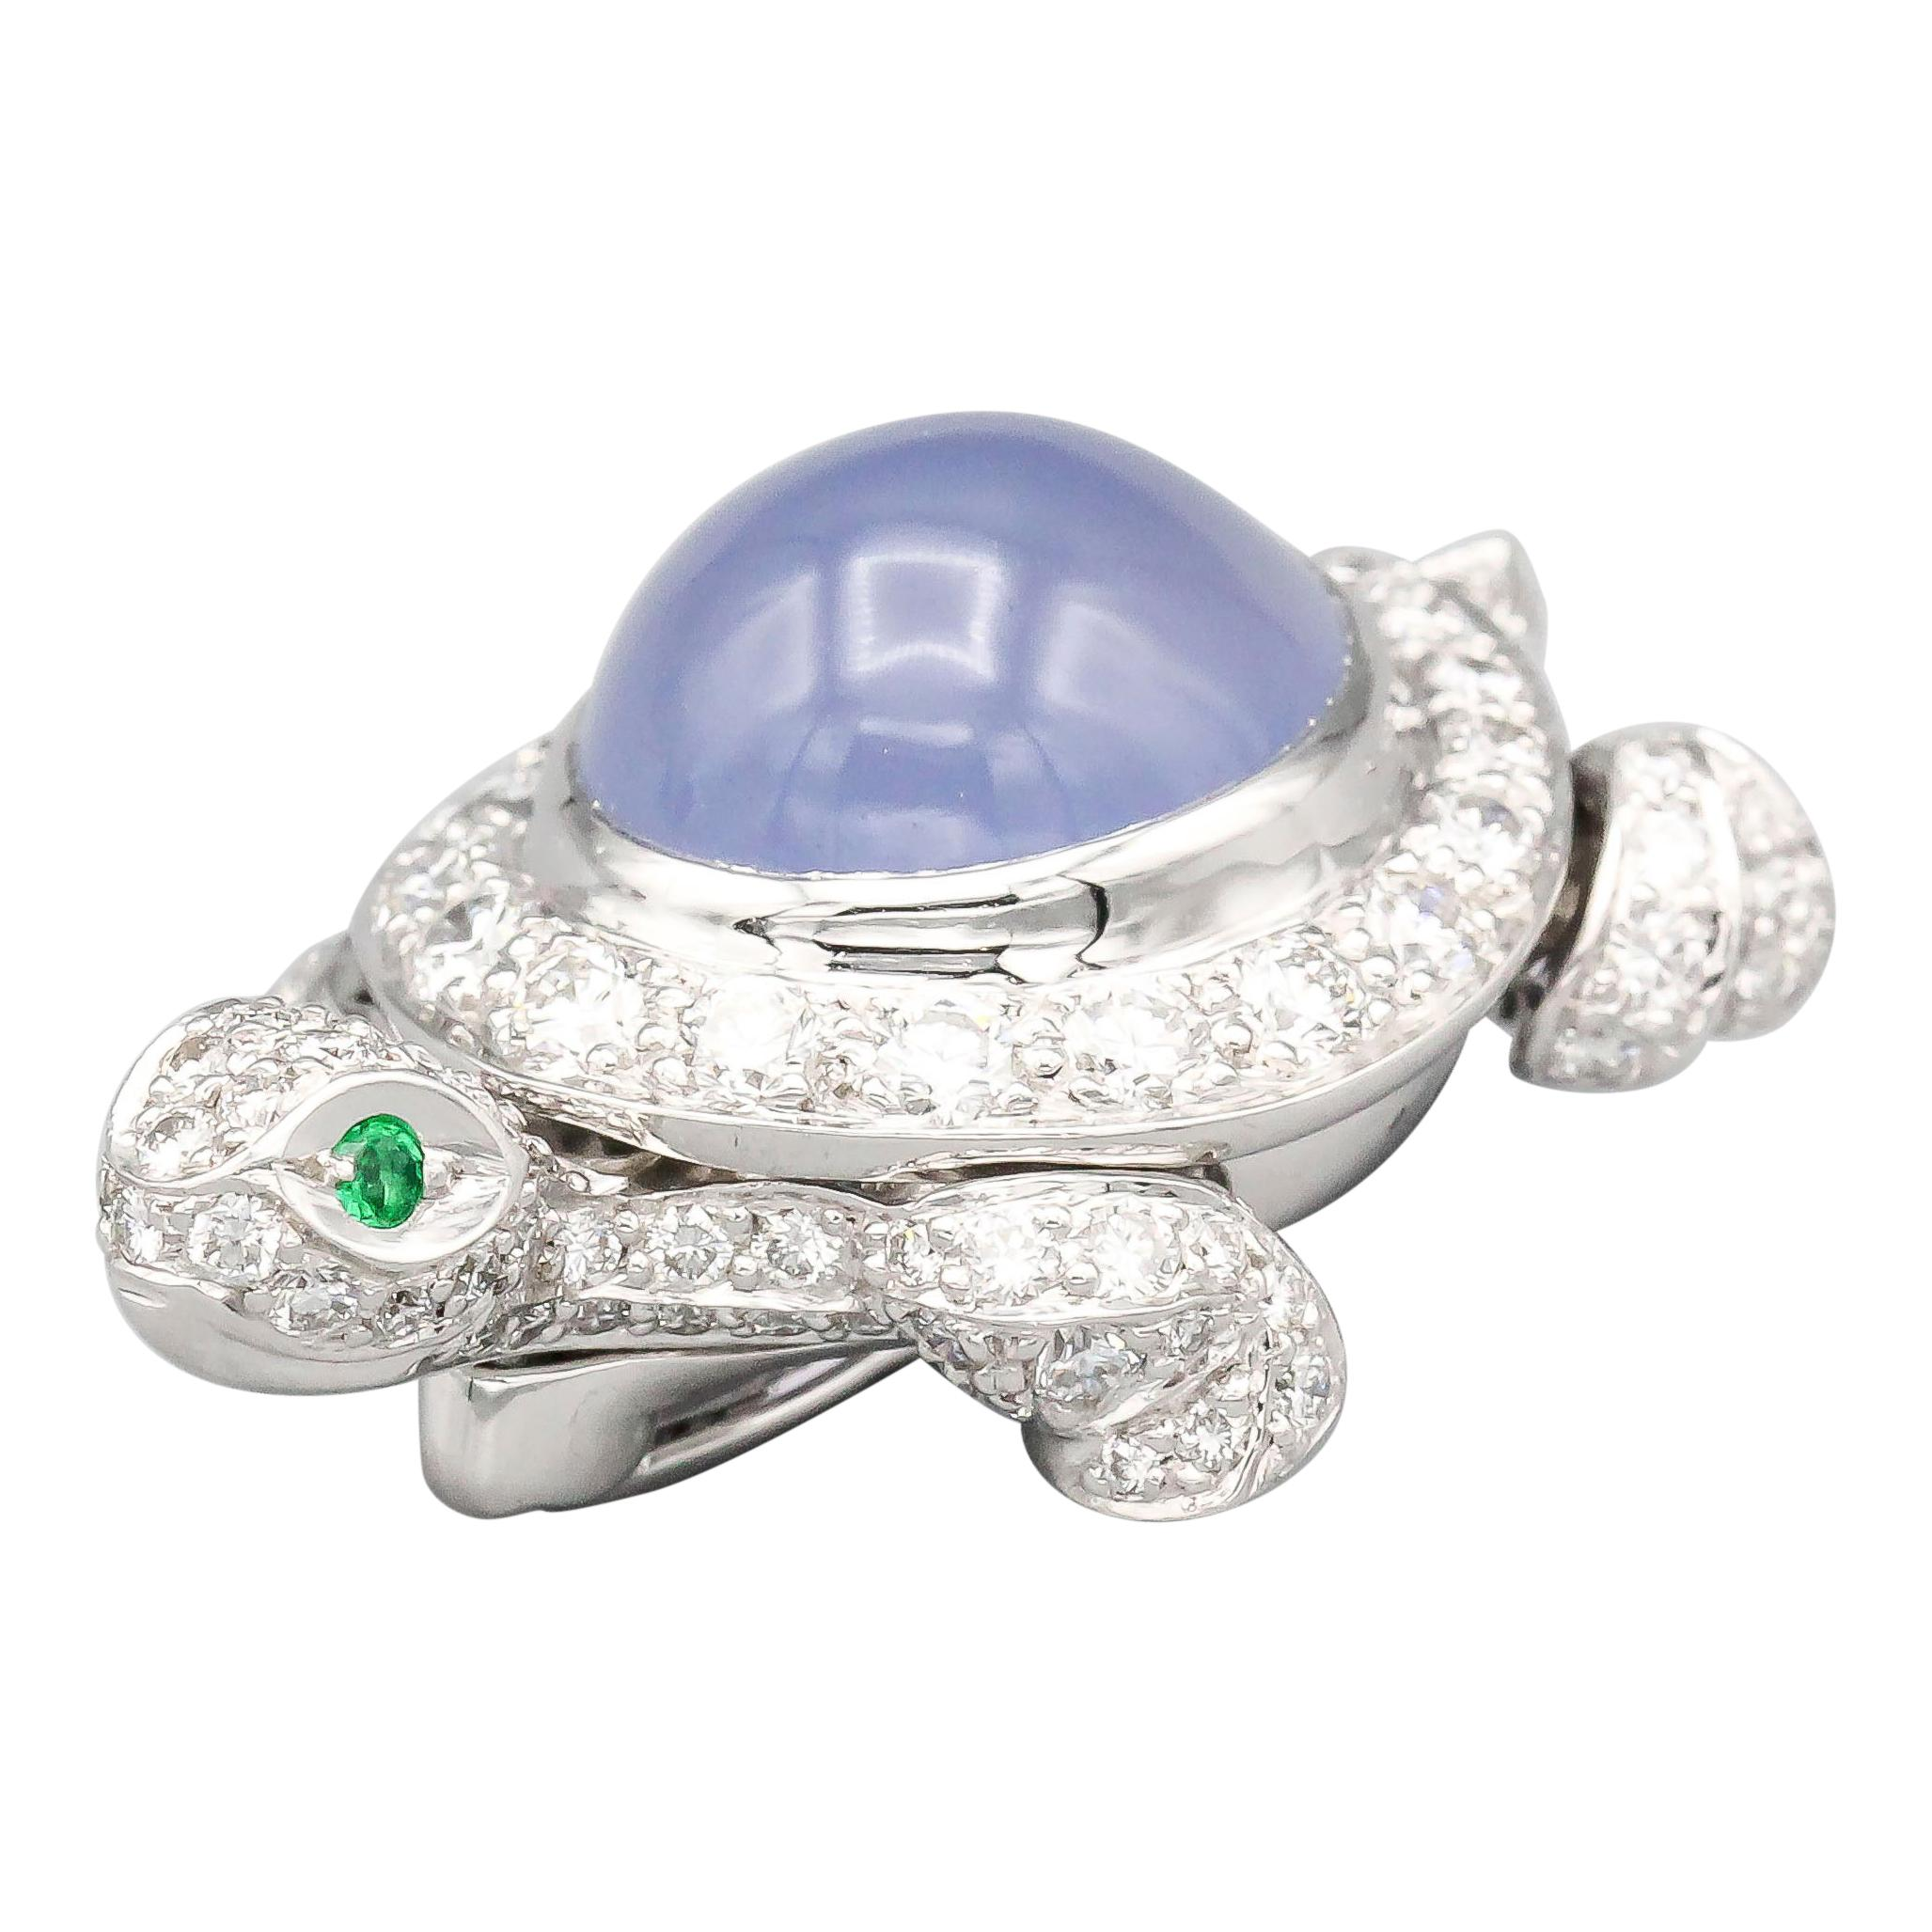 Cartier Diamond Chalcedony and 18 Karat White Gold Turtle Brooch